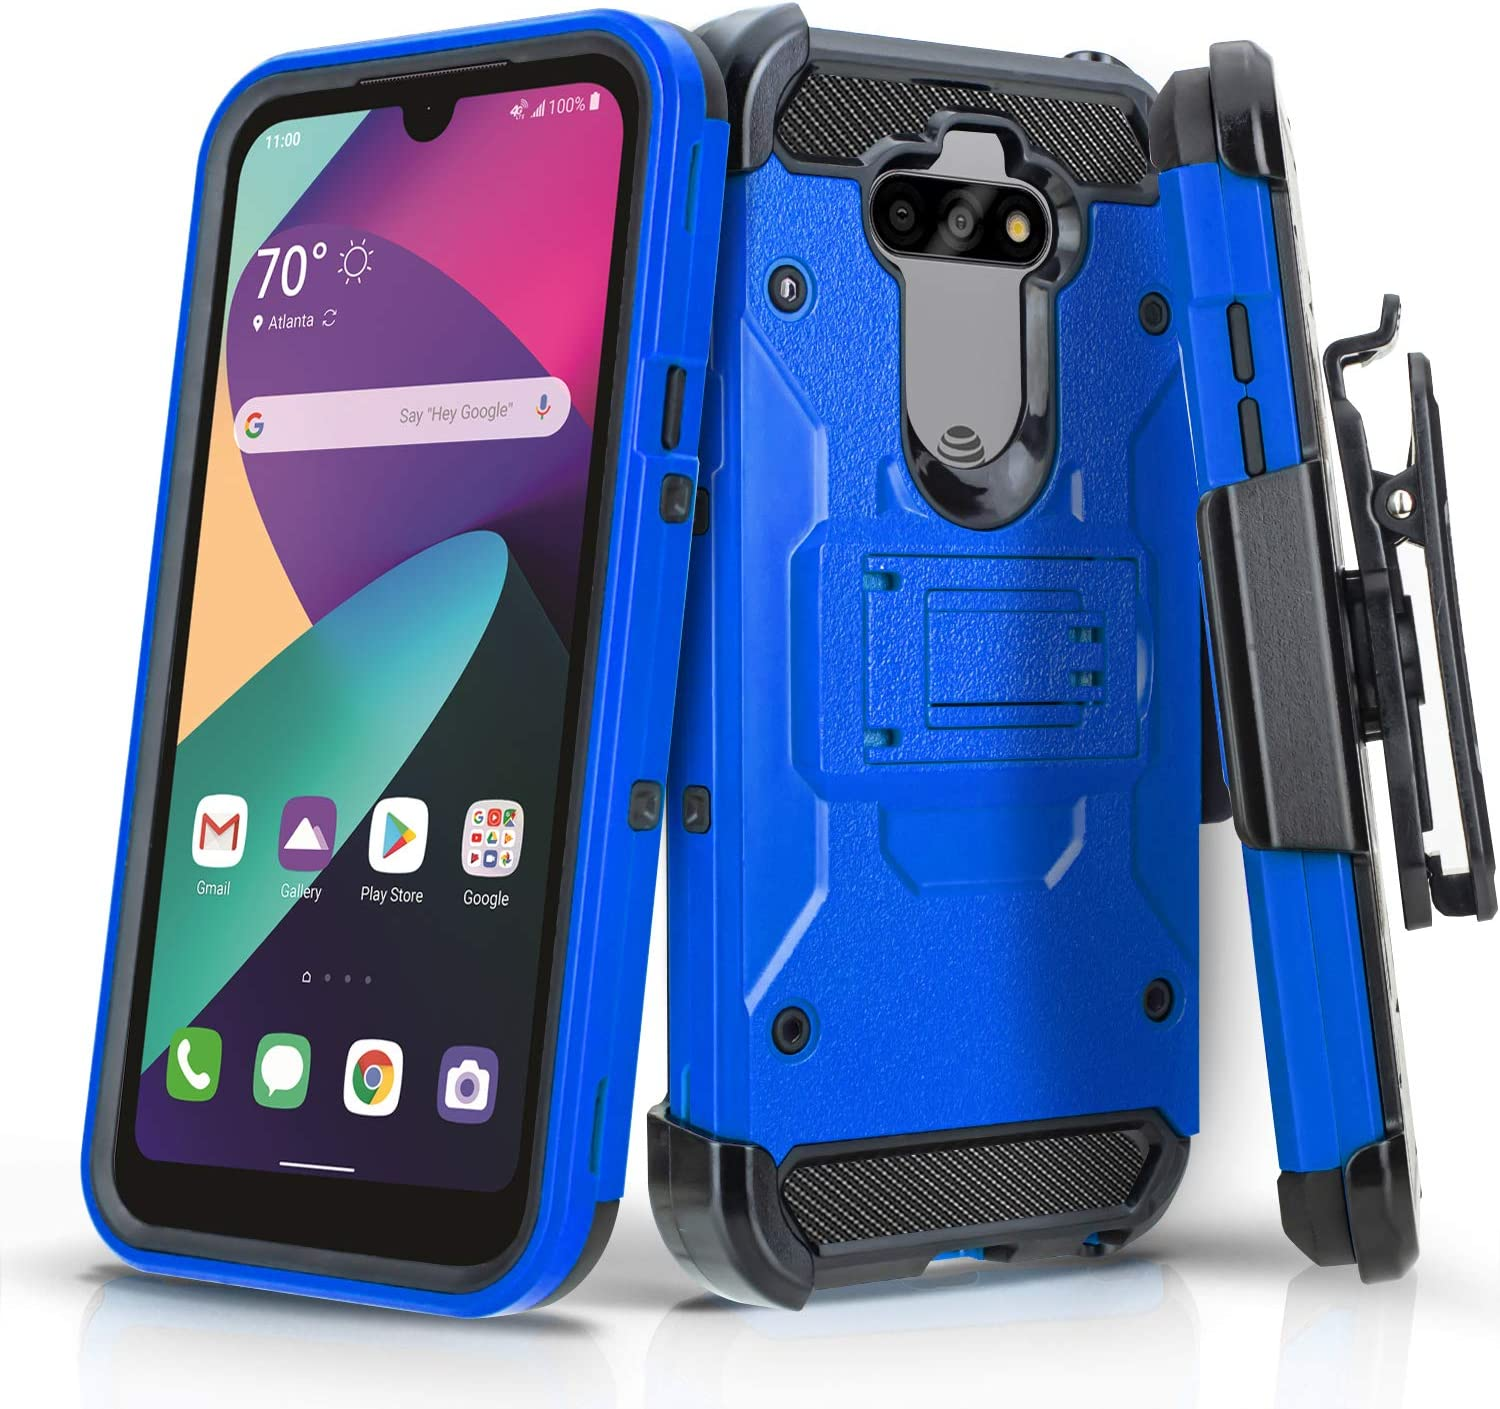 CasemartUSA Phone Case for [LG Phoenix 5 (AT&T Prepaid Phone)], [Tank Series][Blue] Heavy Duty Shockproof Cover with Built-in Kickstand & Swivel Belt Clip Holster for LG Phoenix 5 (AT&T)